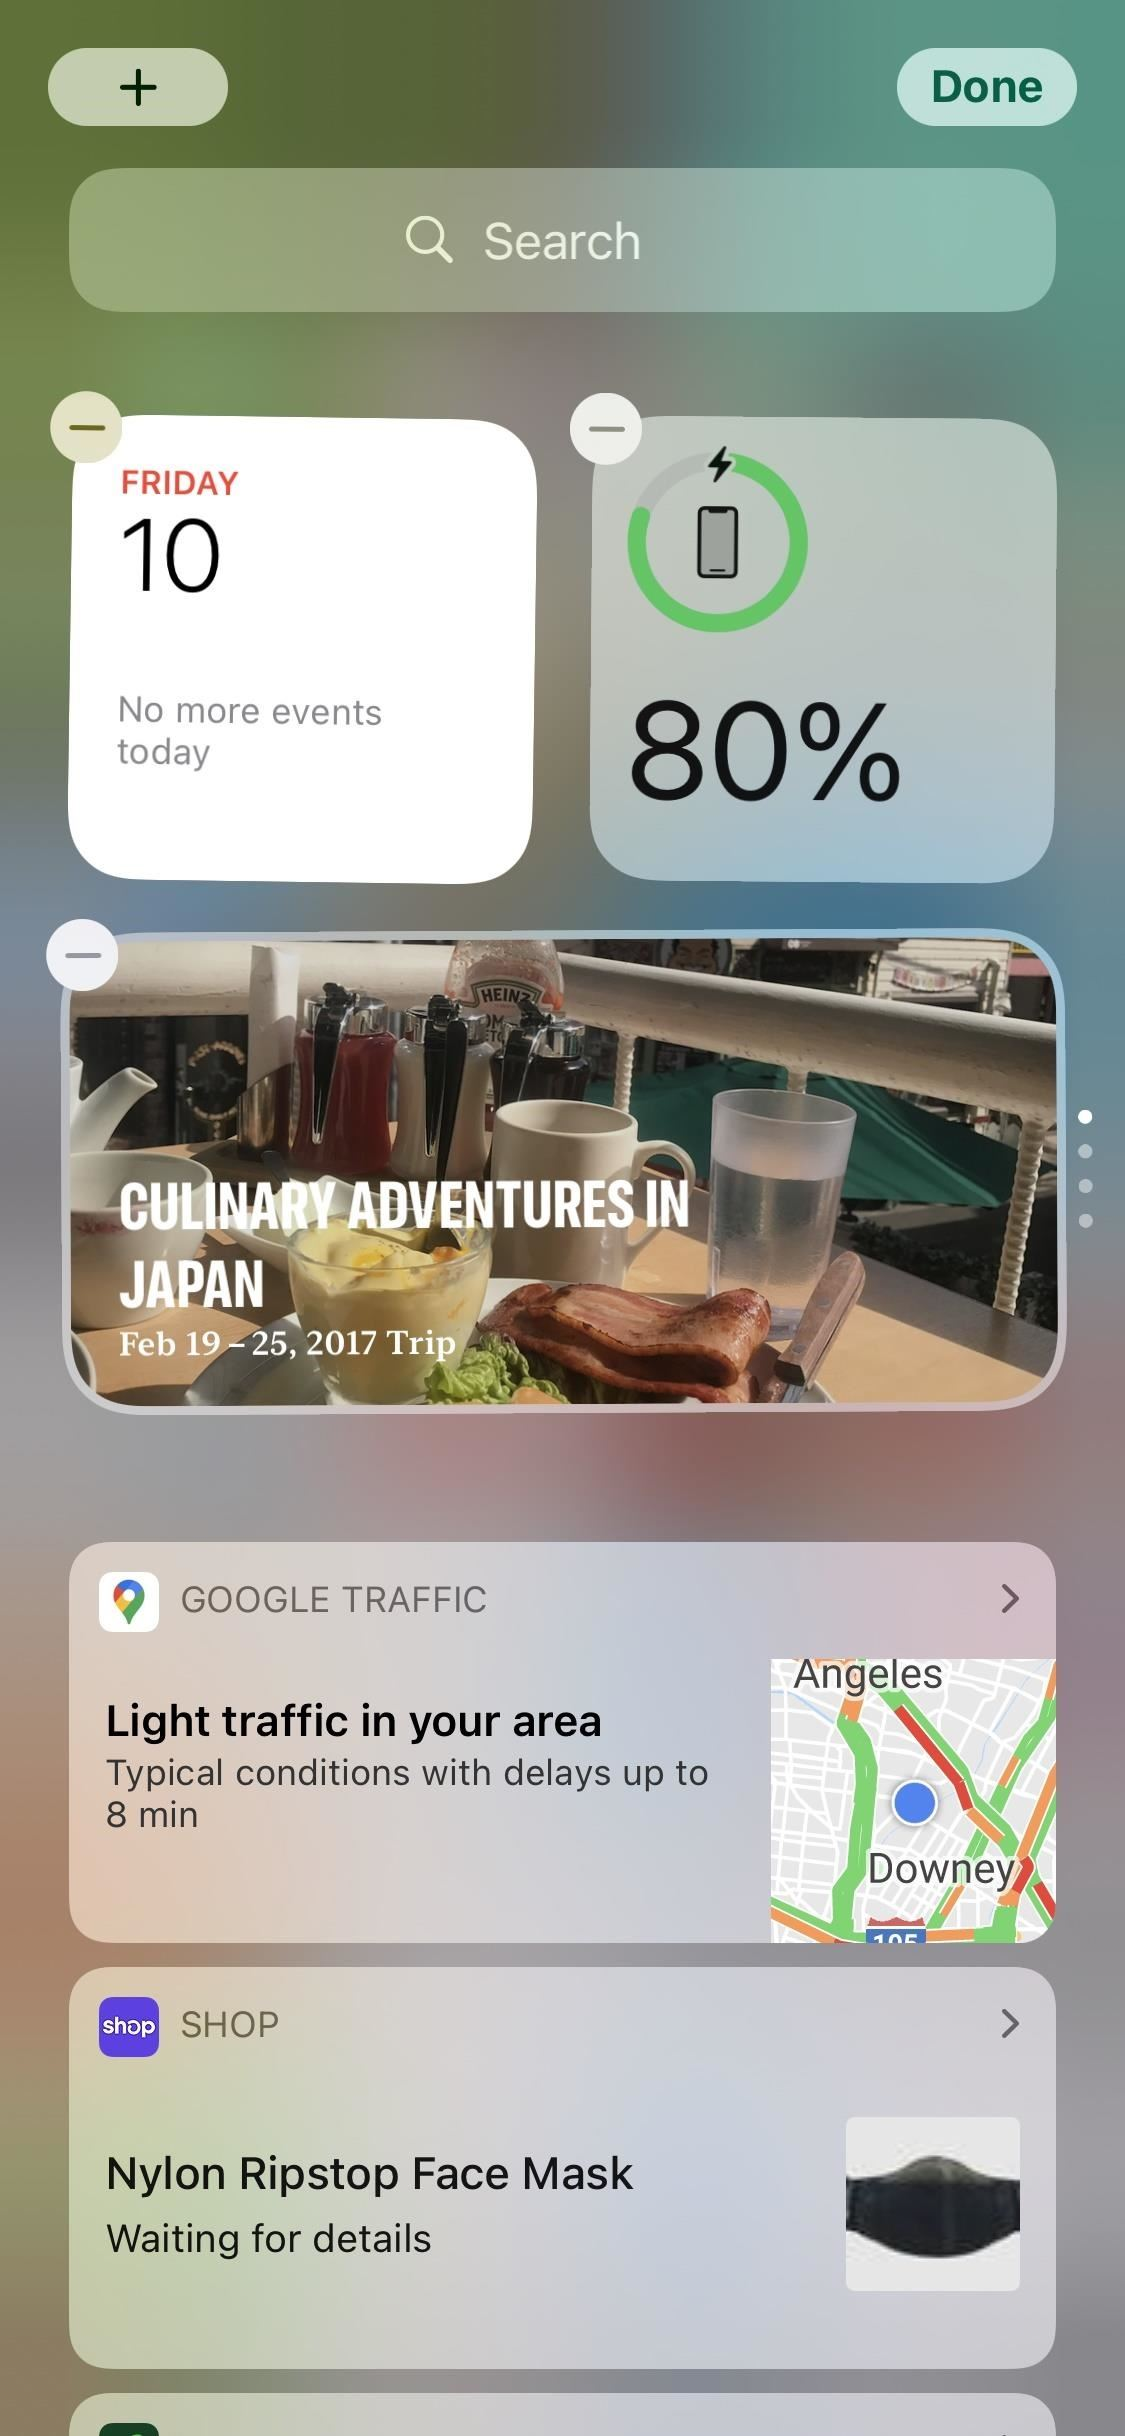 22 Things You Need to Know About iOS 14's New Home Screen Widgets for iPhone